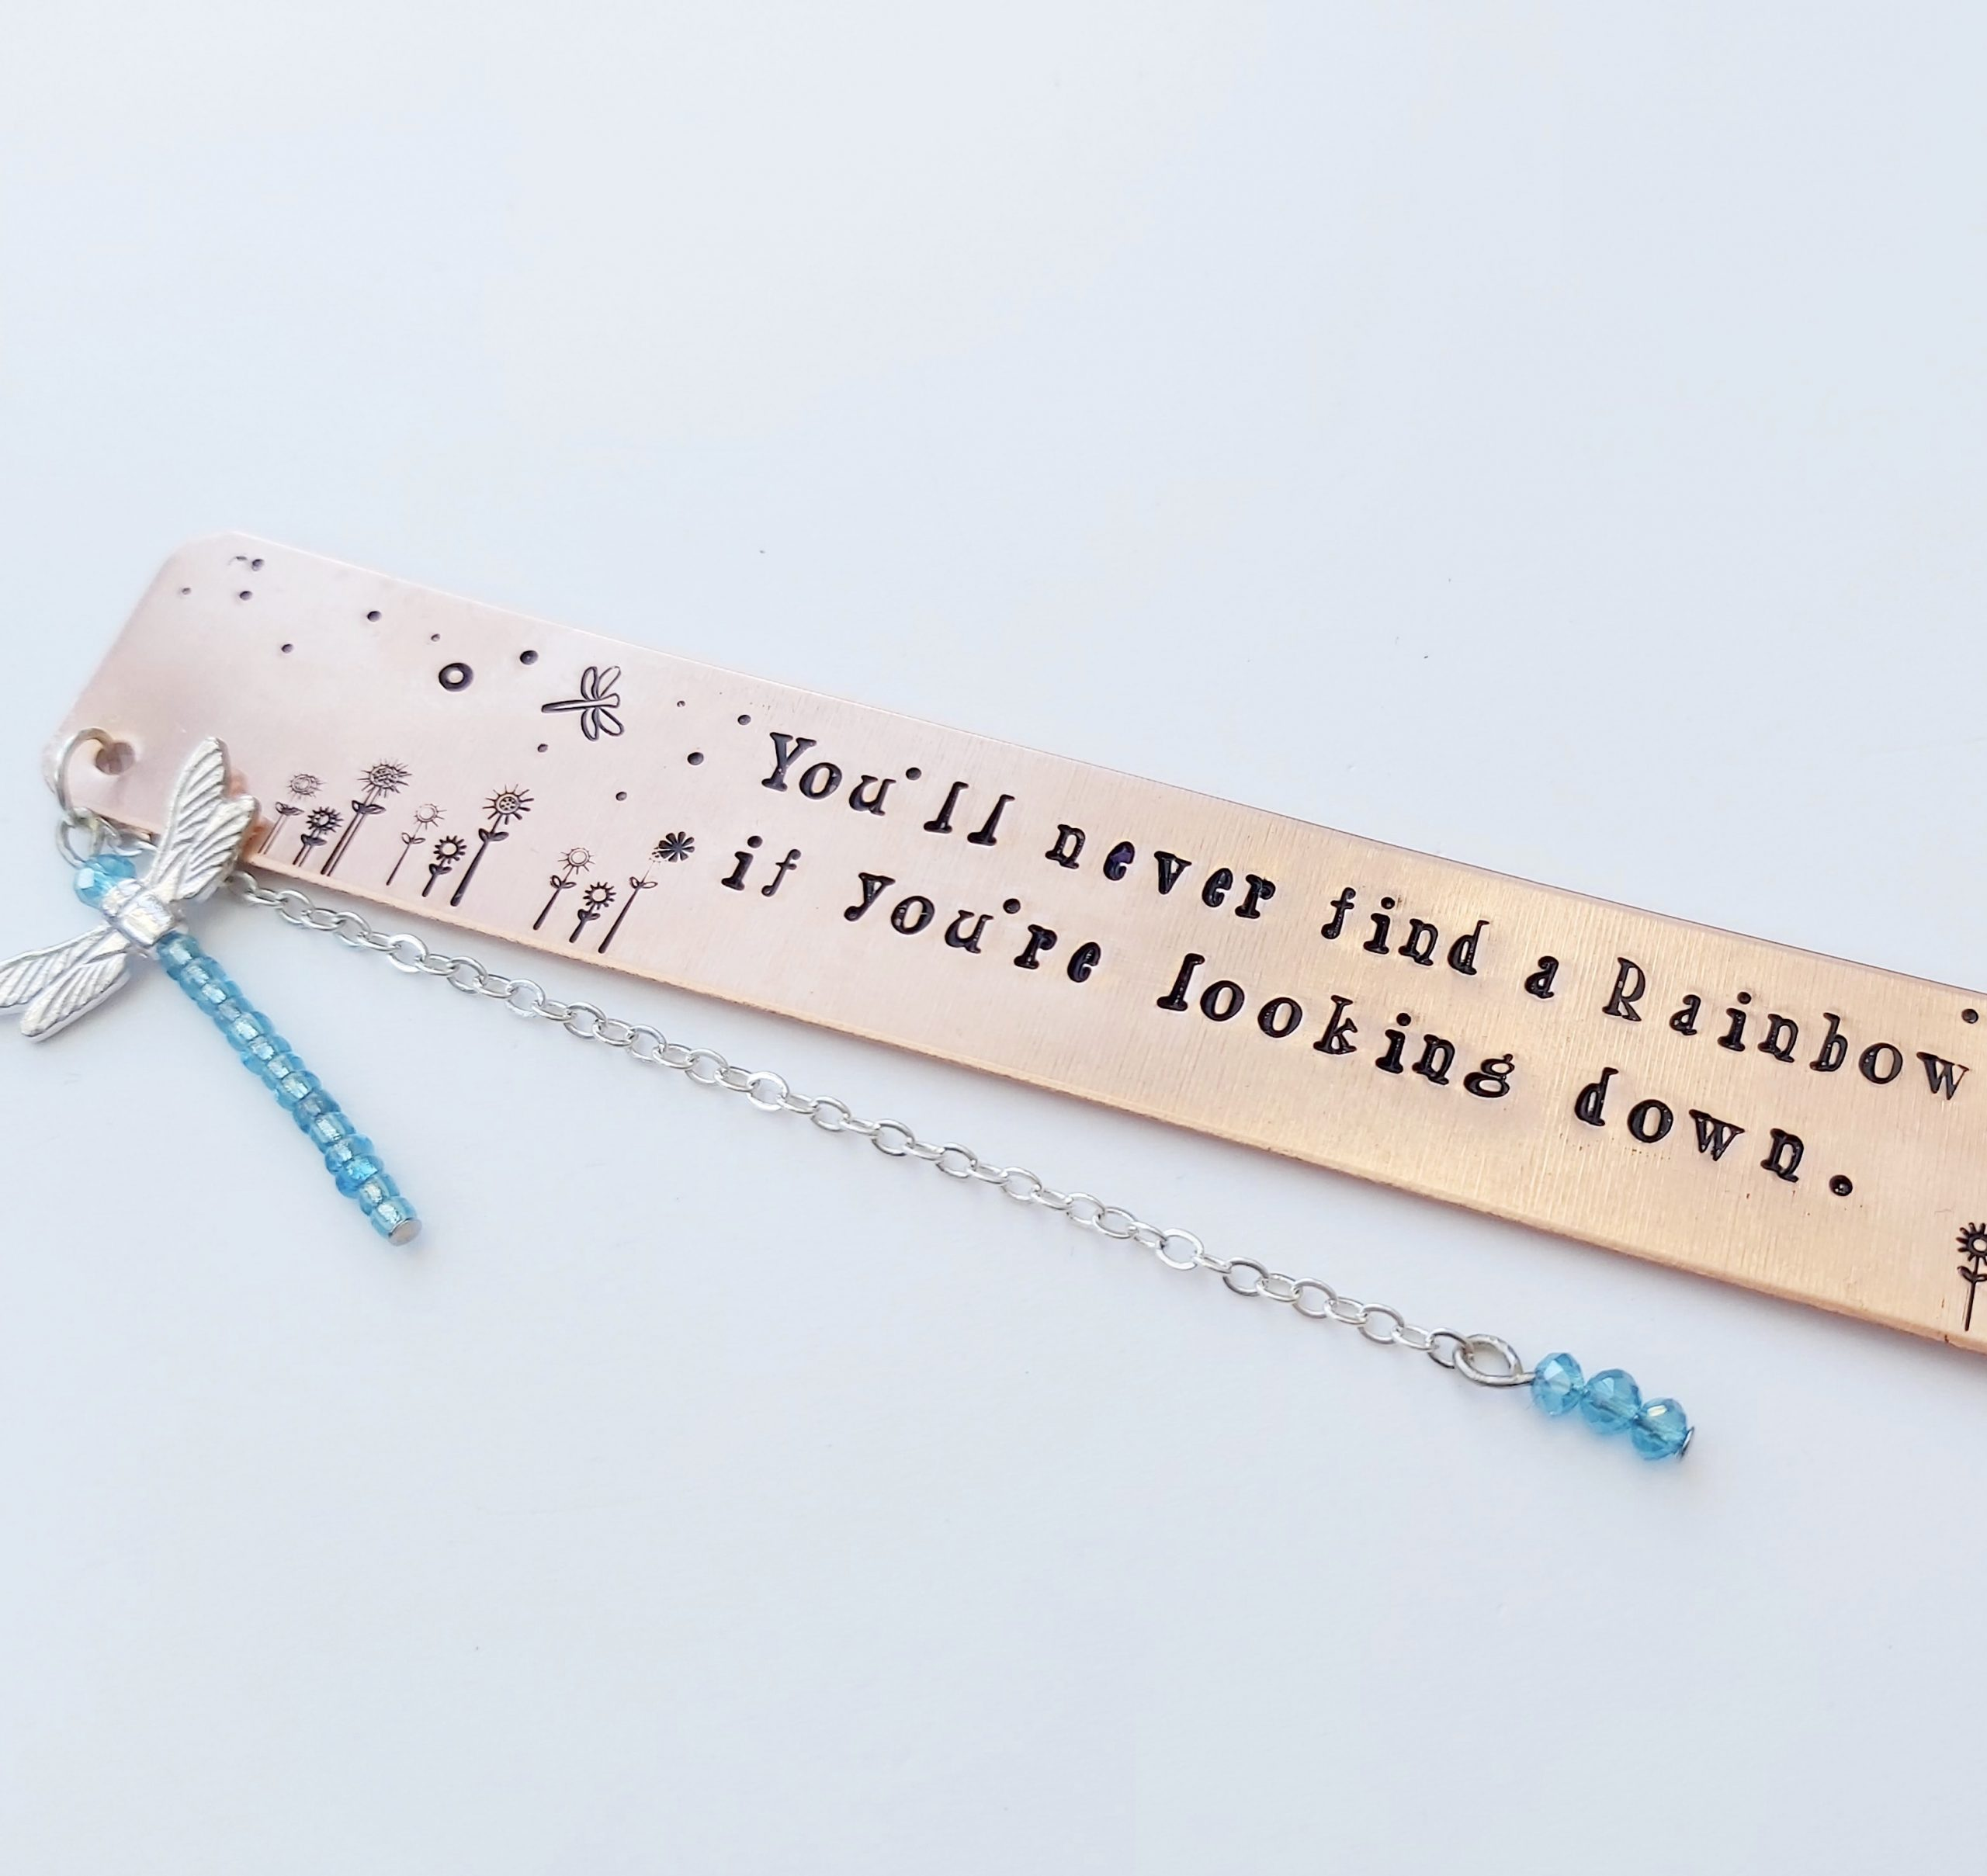 Rose Gold Bookmark With Rainbow Wording